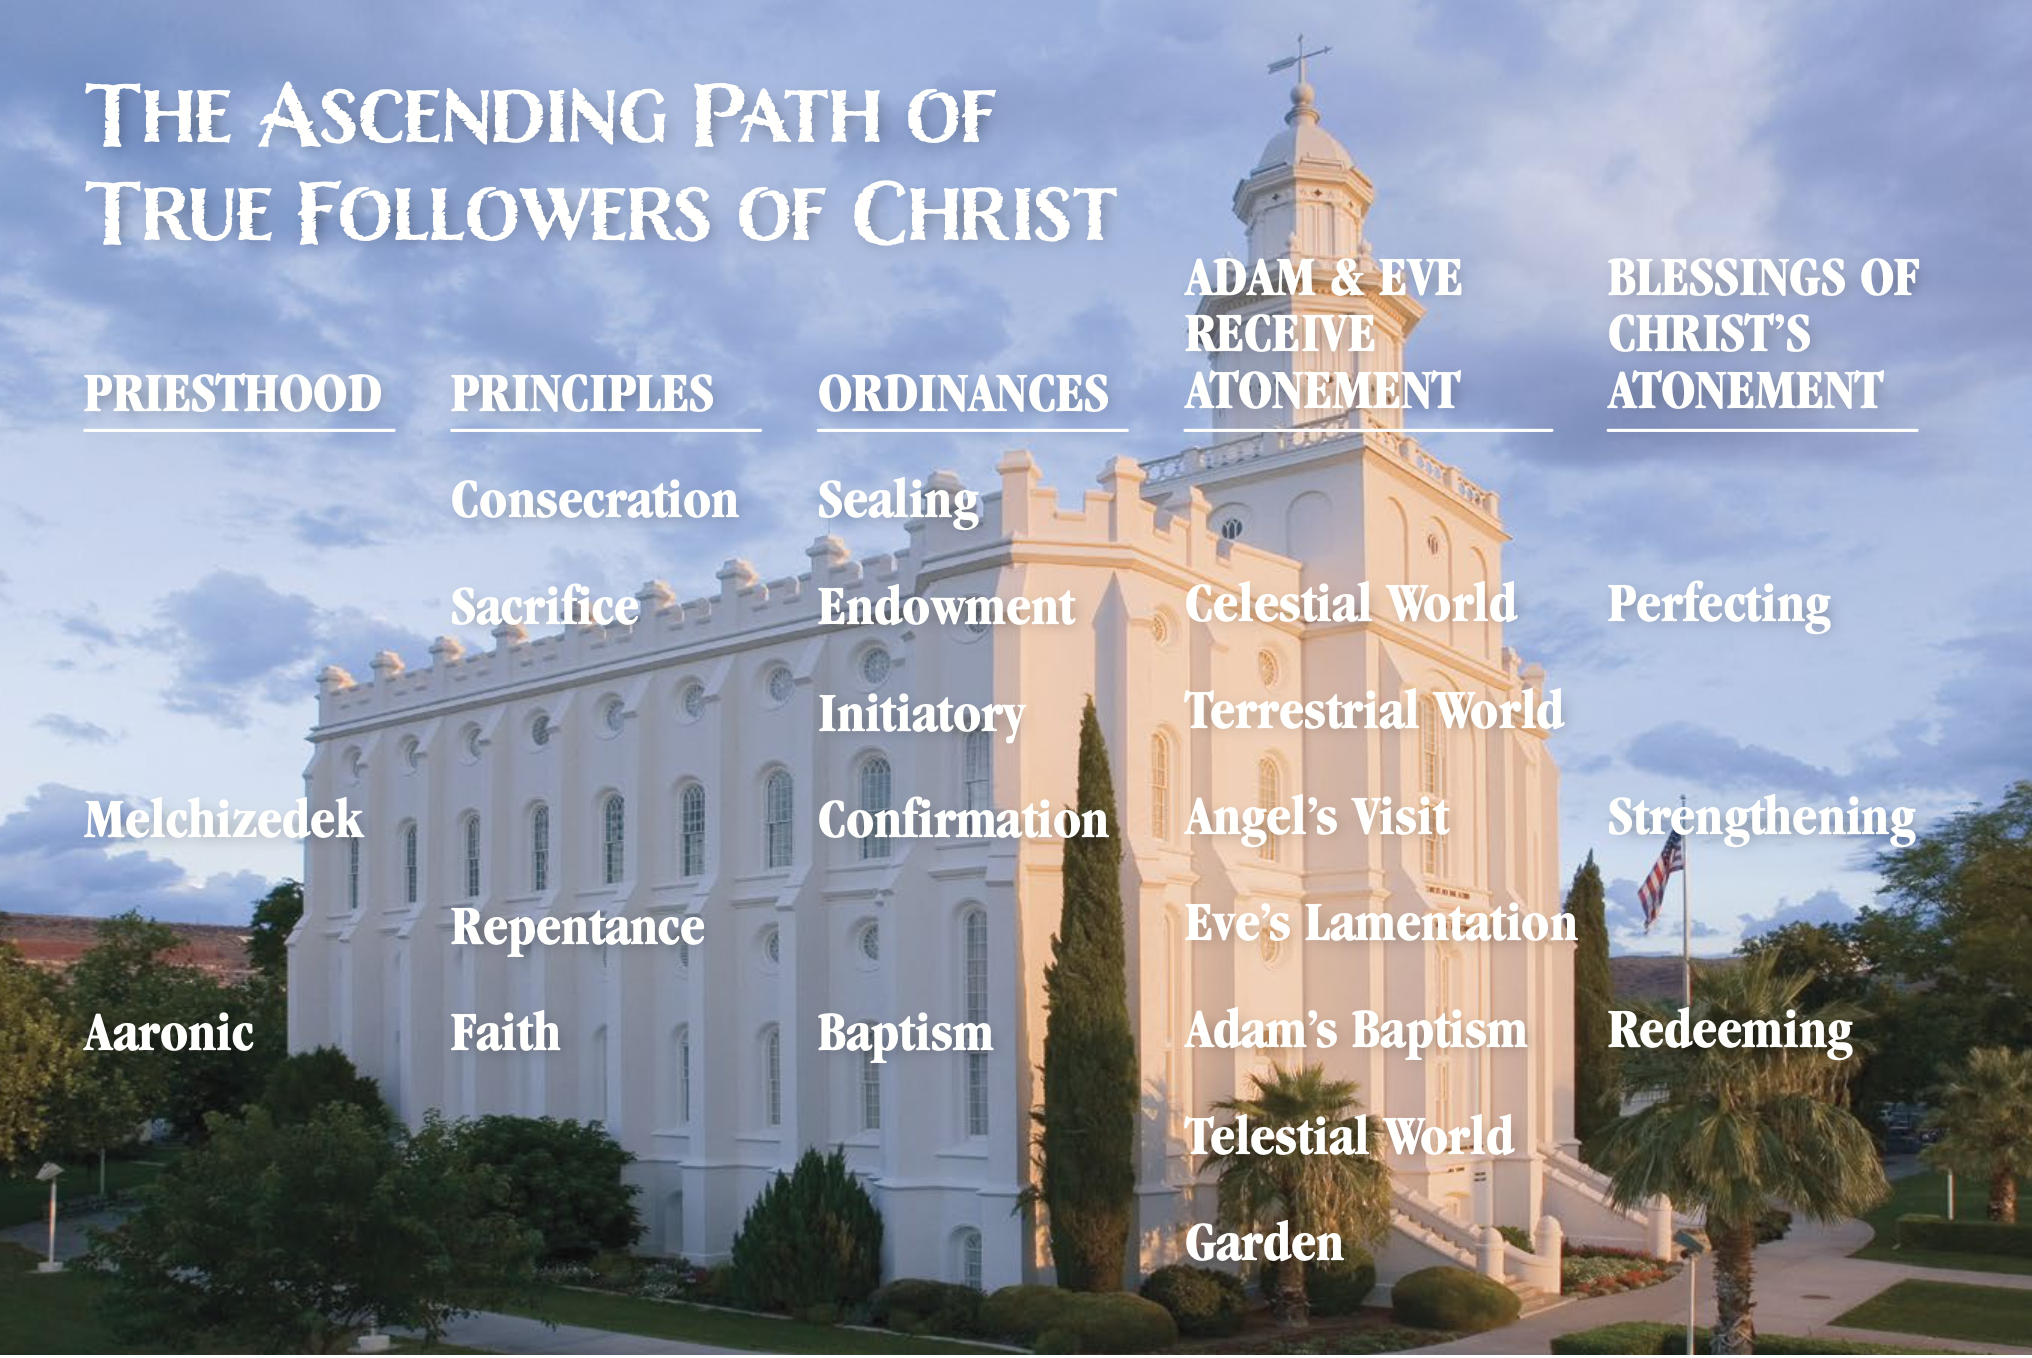 The Ascending Path of True Followers of Christ, Shown Against the Backdrop of the St. George Utah Temple.